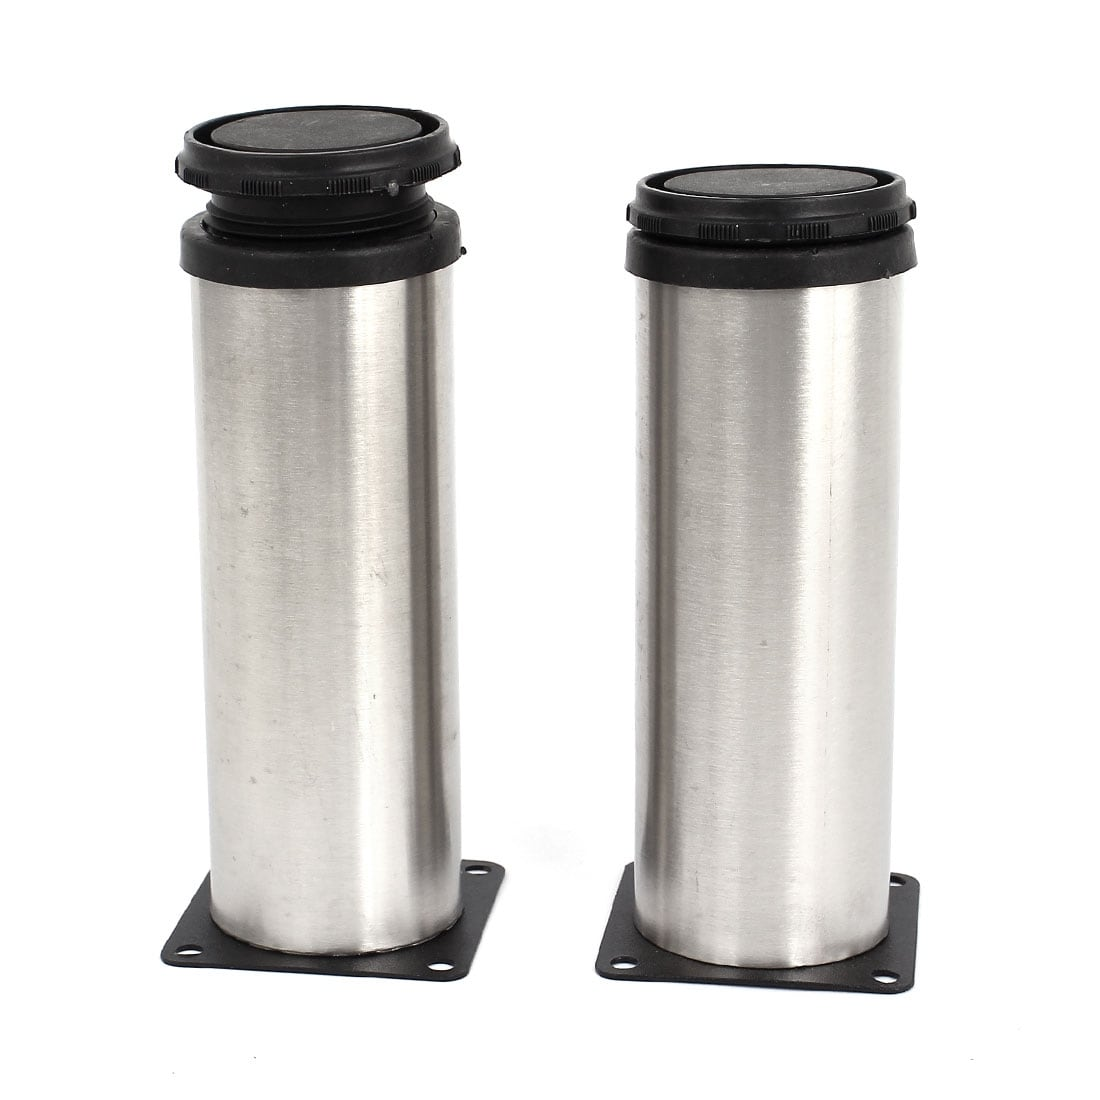 Shop unique bargains 2pcs 150mm x 50mm adjustable plinth leg feet for kitchen cabinet furniture sofa on sale free shipping on orders over 45